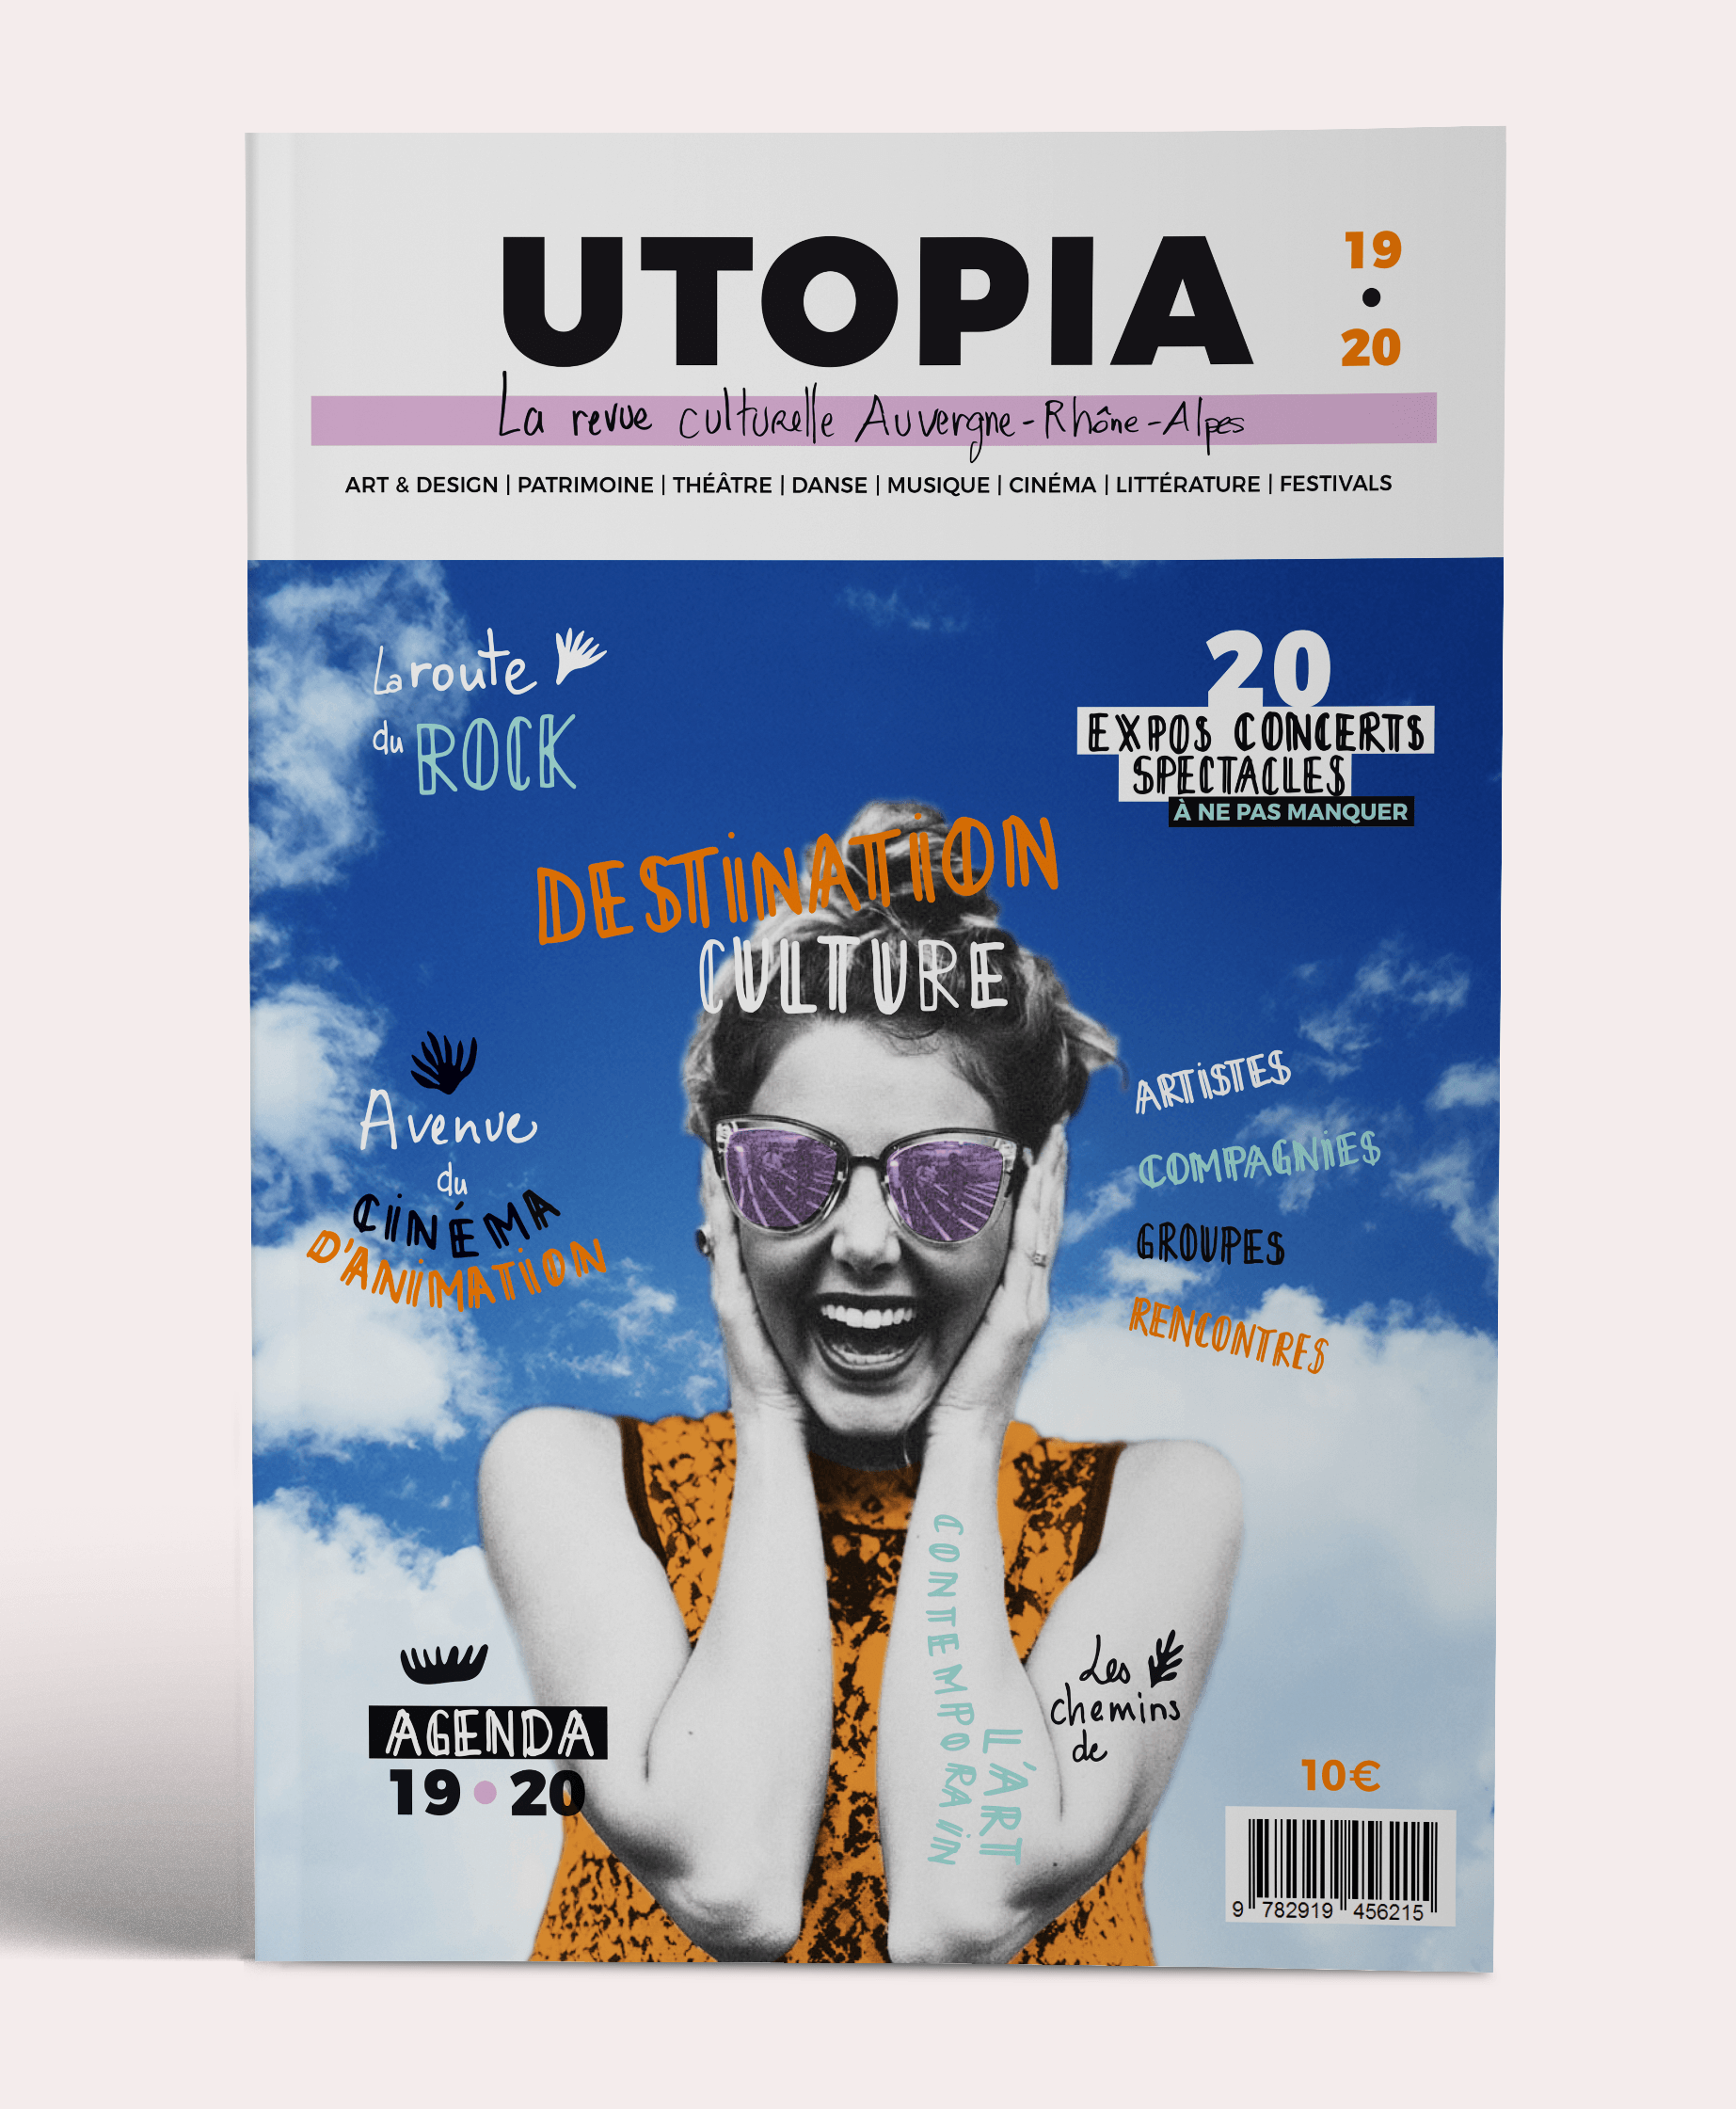 utopia-revue-19-20